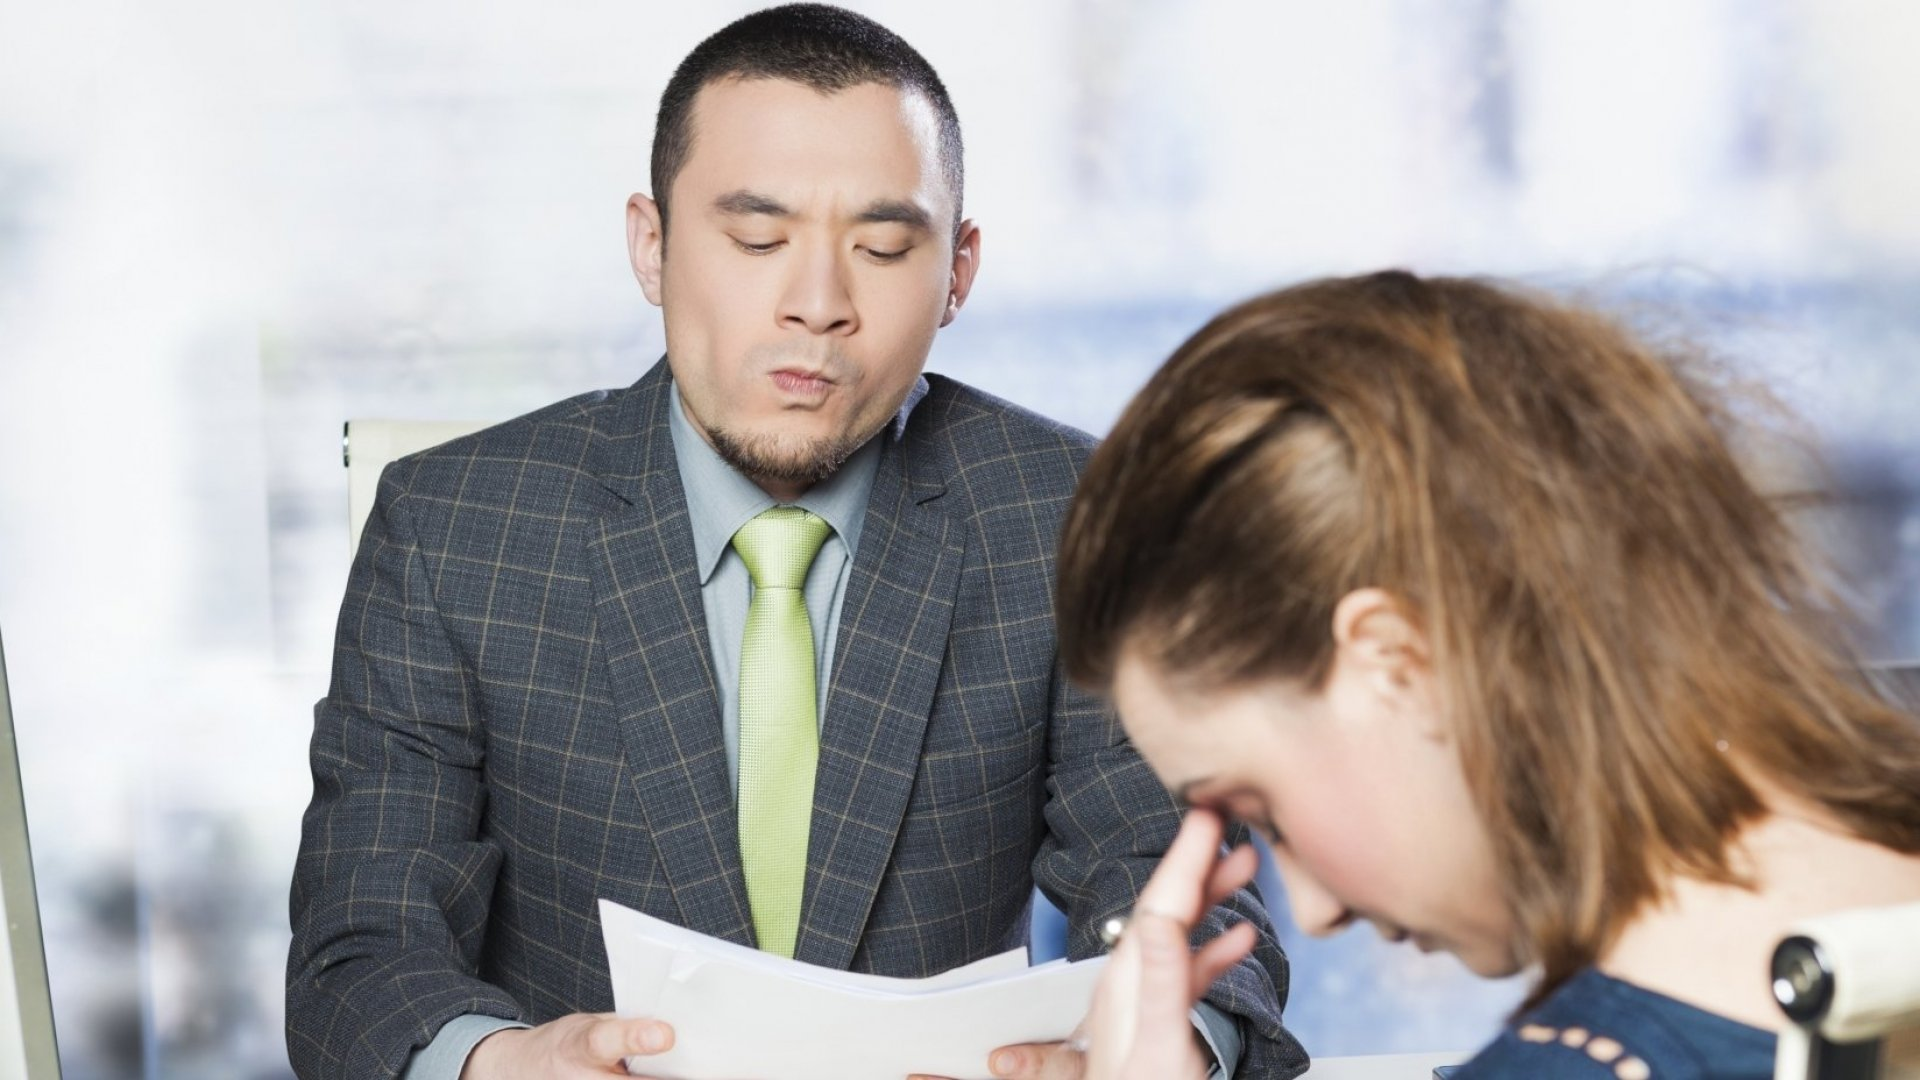 Is Your Boss a Narcissist? 7 Easy Steps to Survive Big Egos at Work